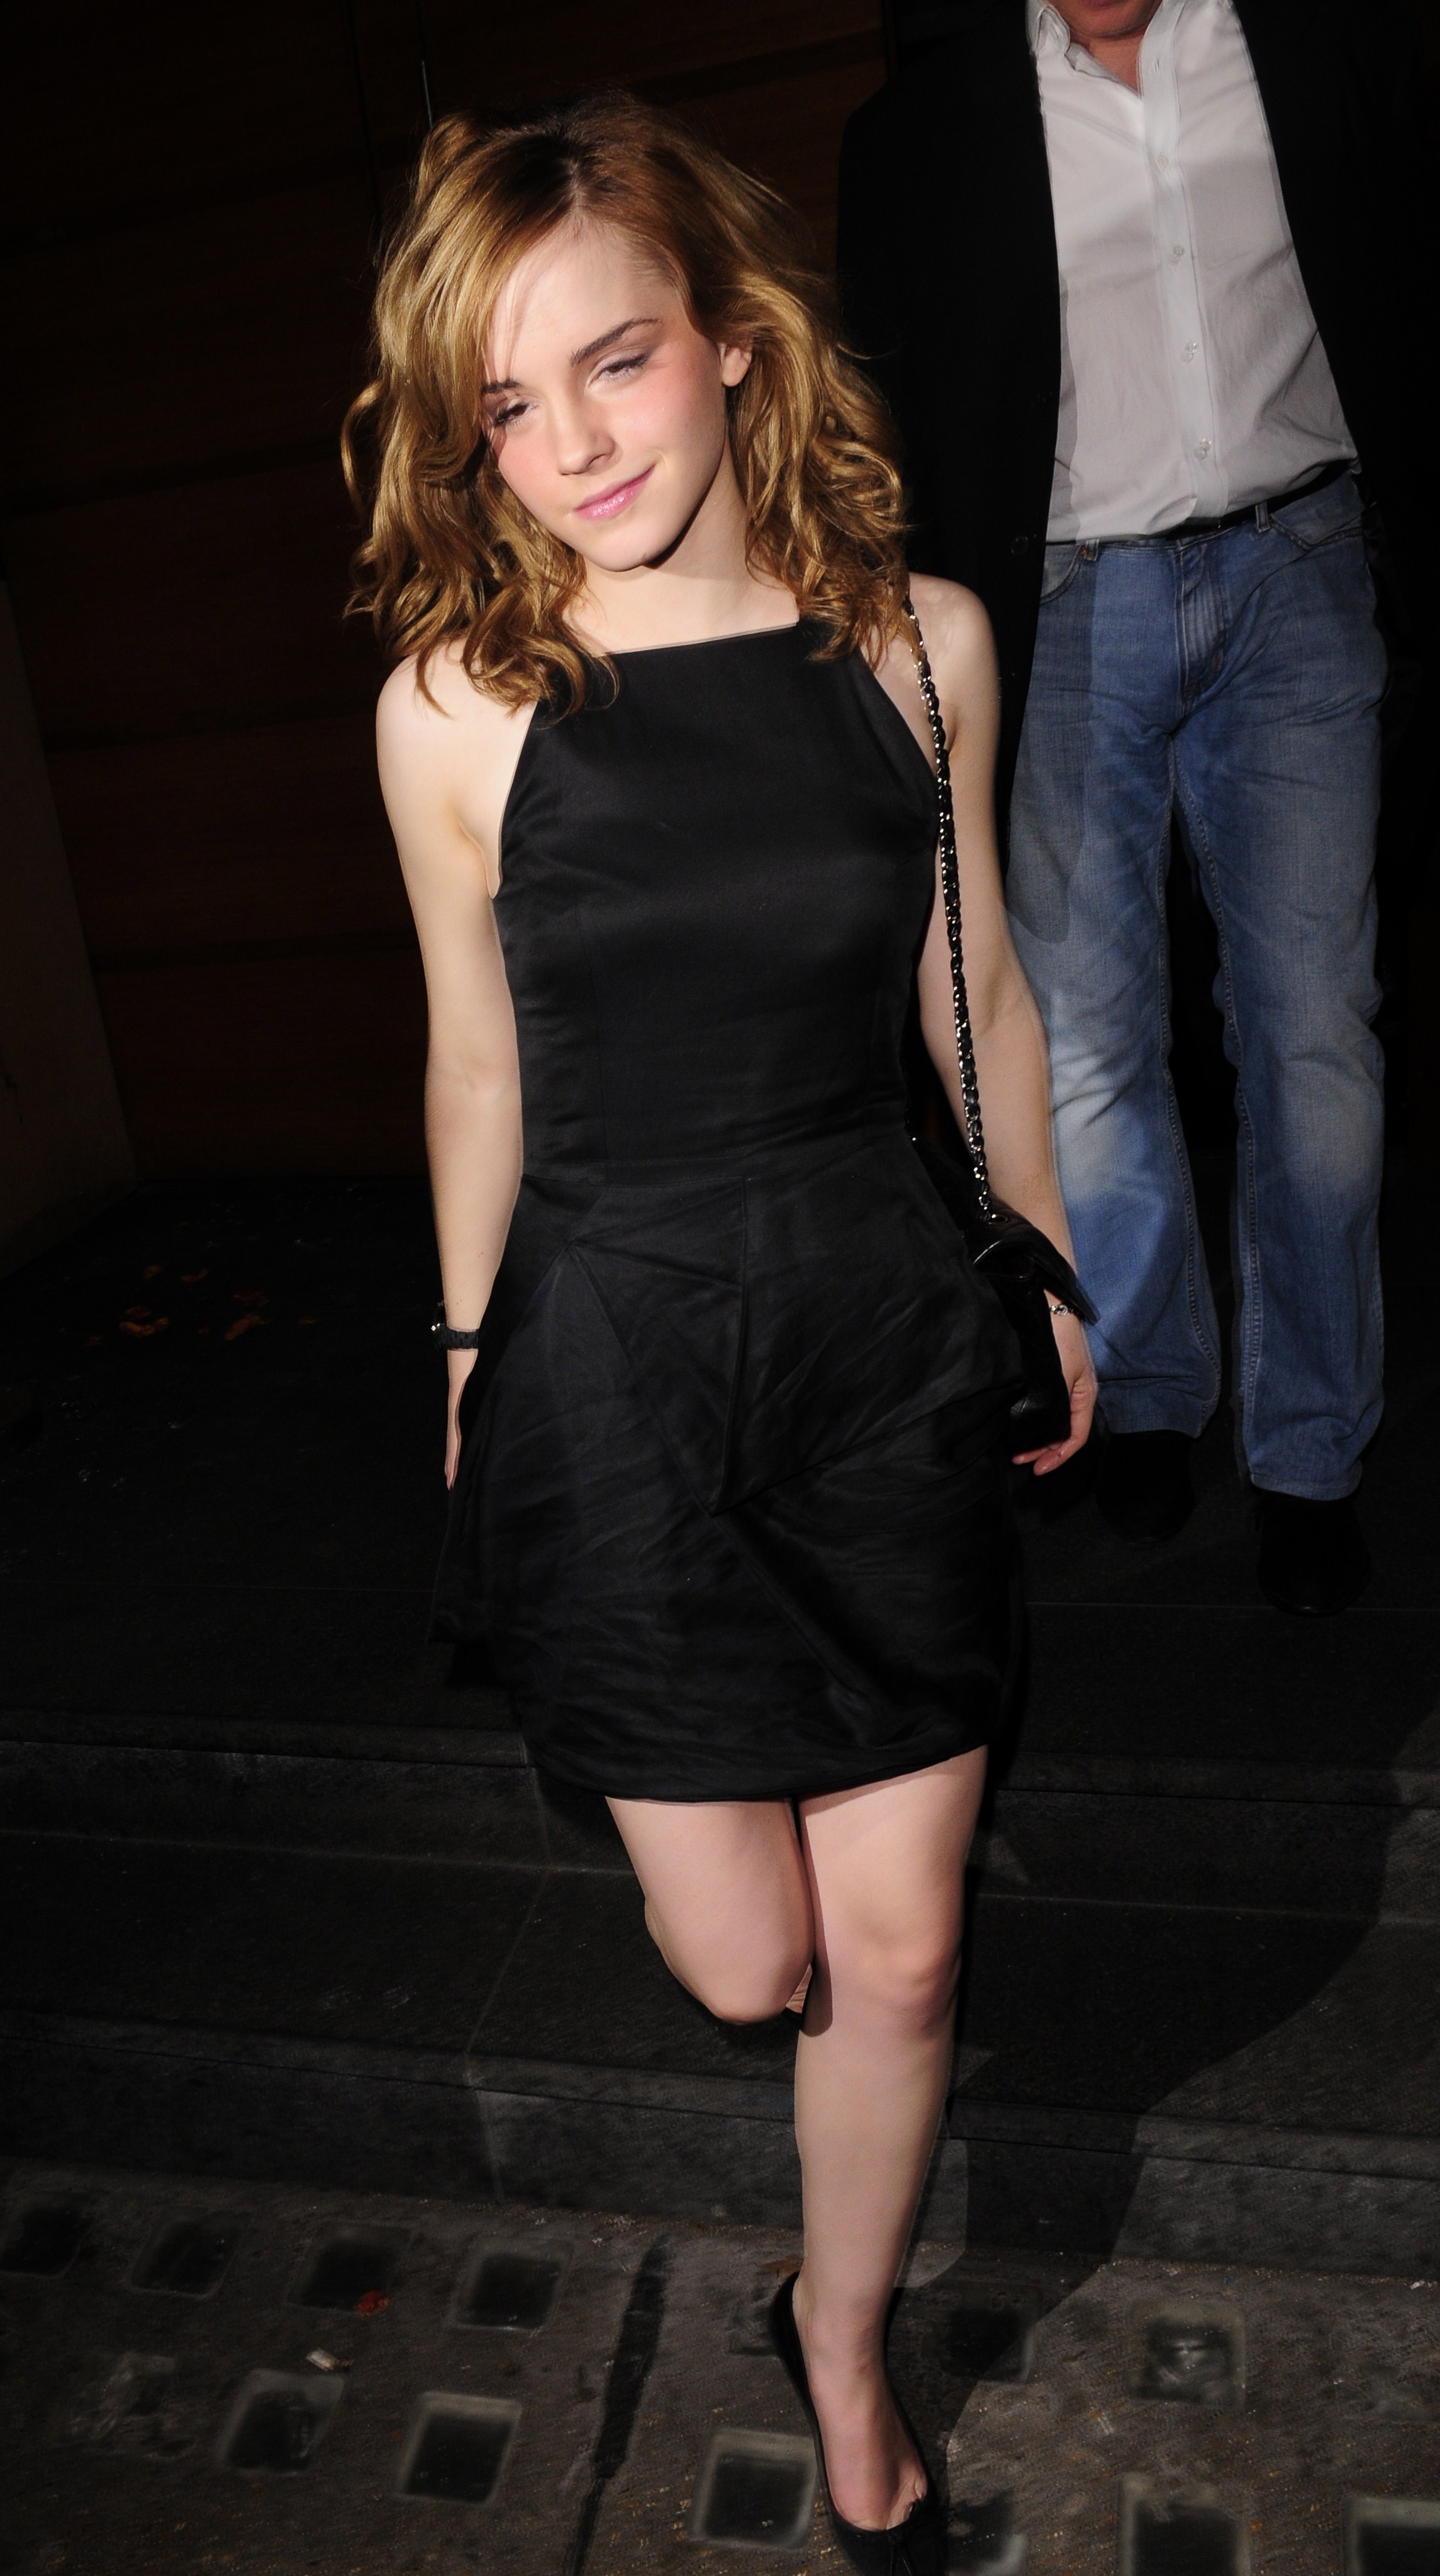 86421_celeb-city.org_Emma_Watson_arriving_for_her_18th_birthday_party_29_123_1152lo.jpg